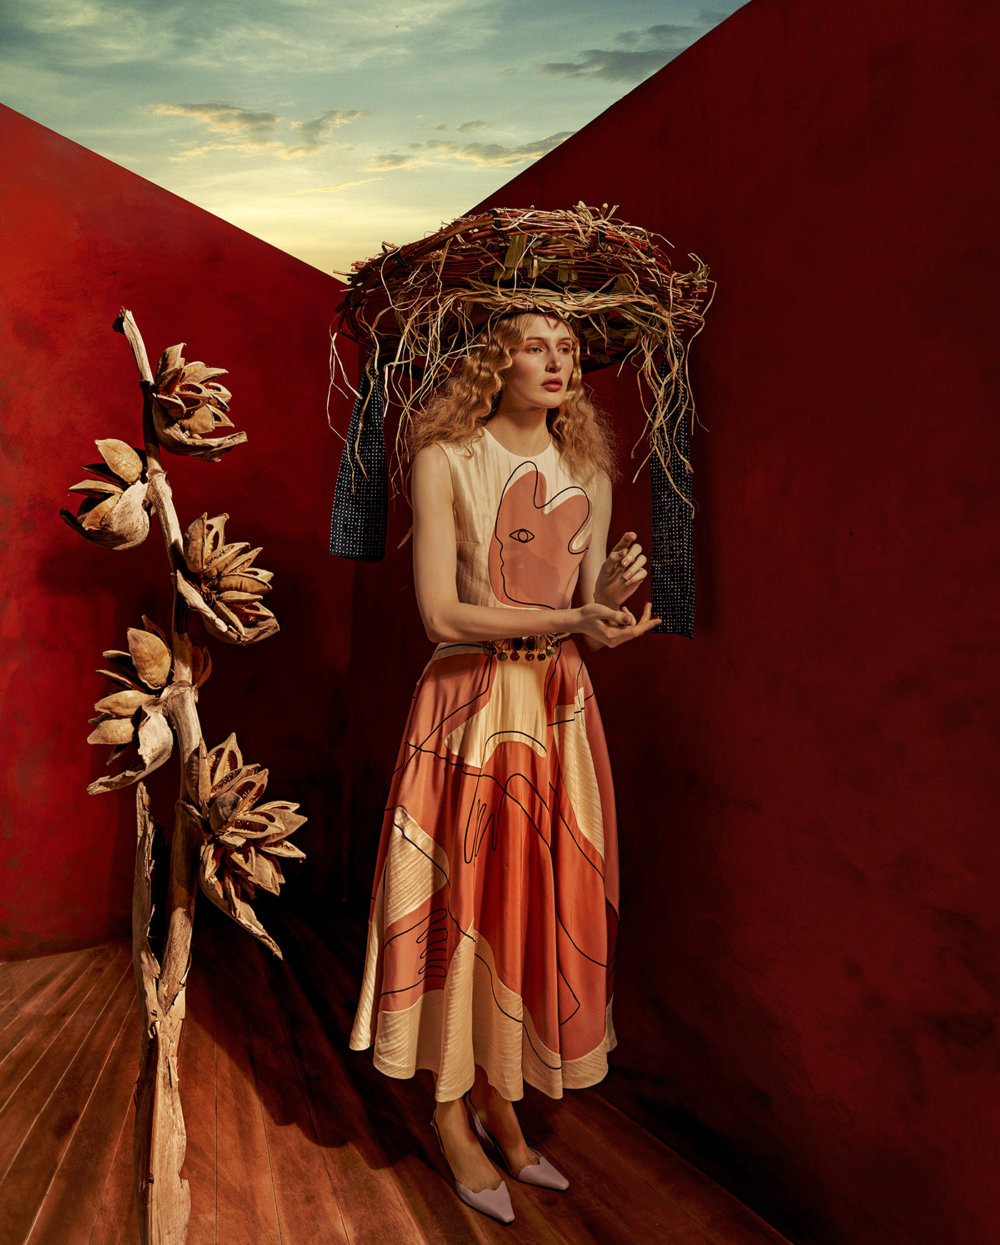 Dorothea Tanning A Fashion And Beauty Photograph Series By Sandrine And Michael 6